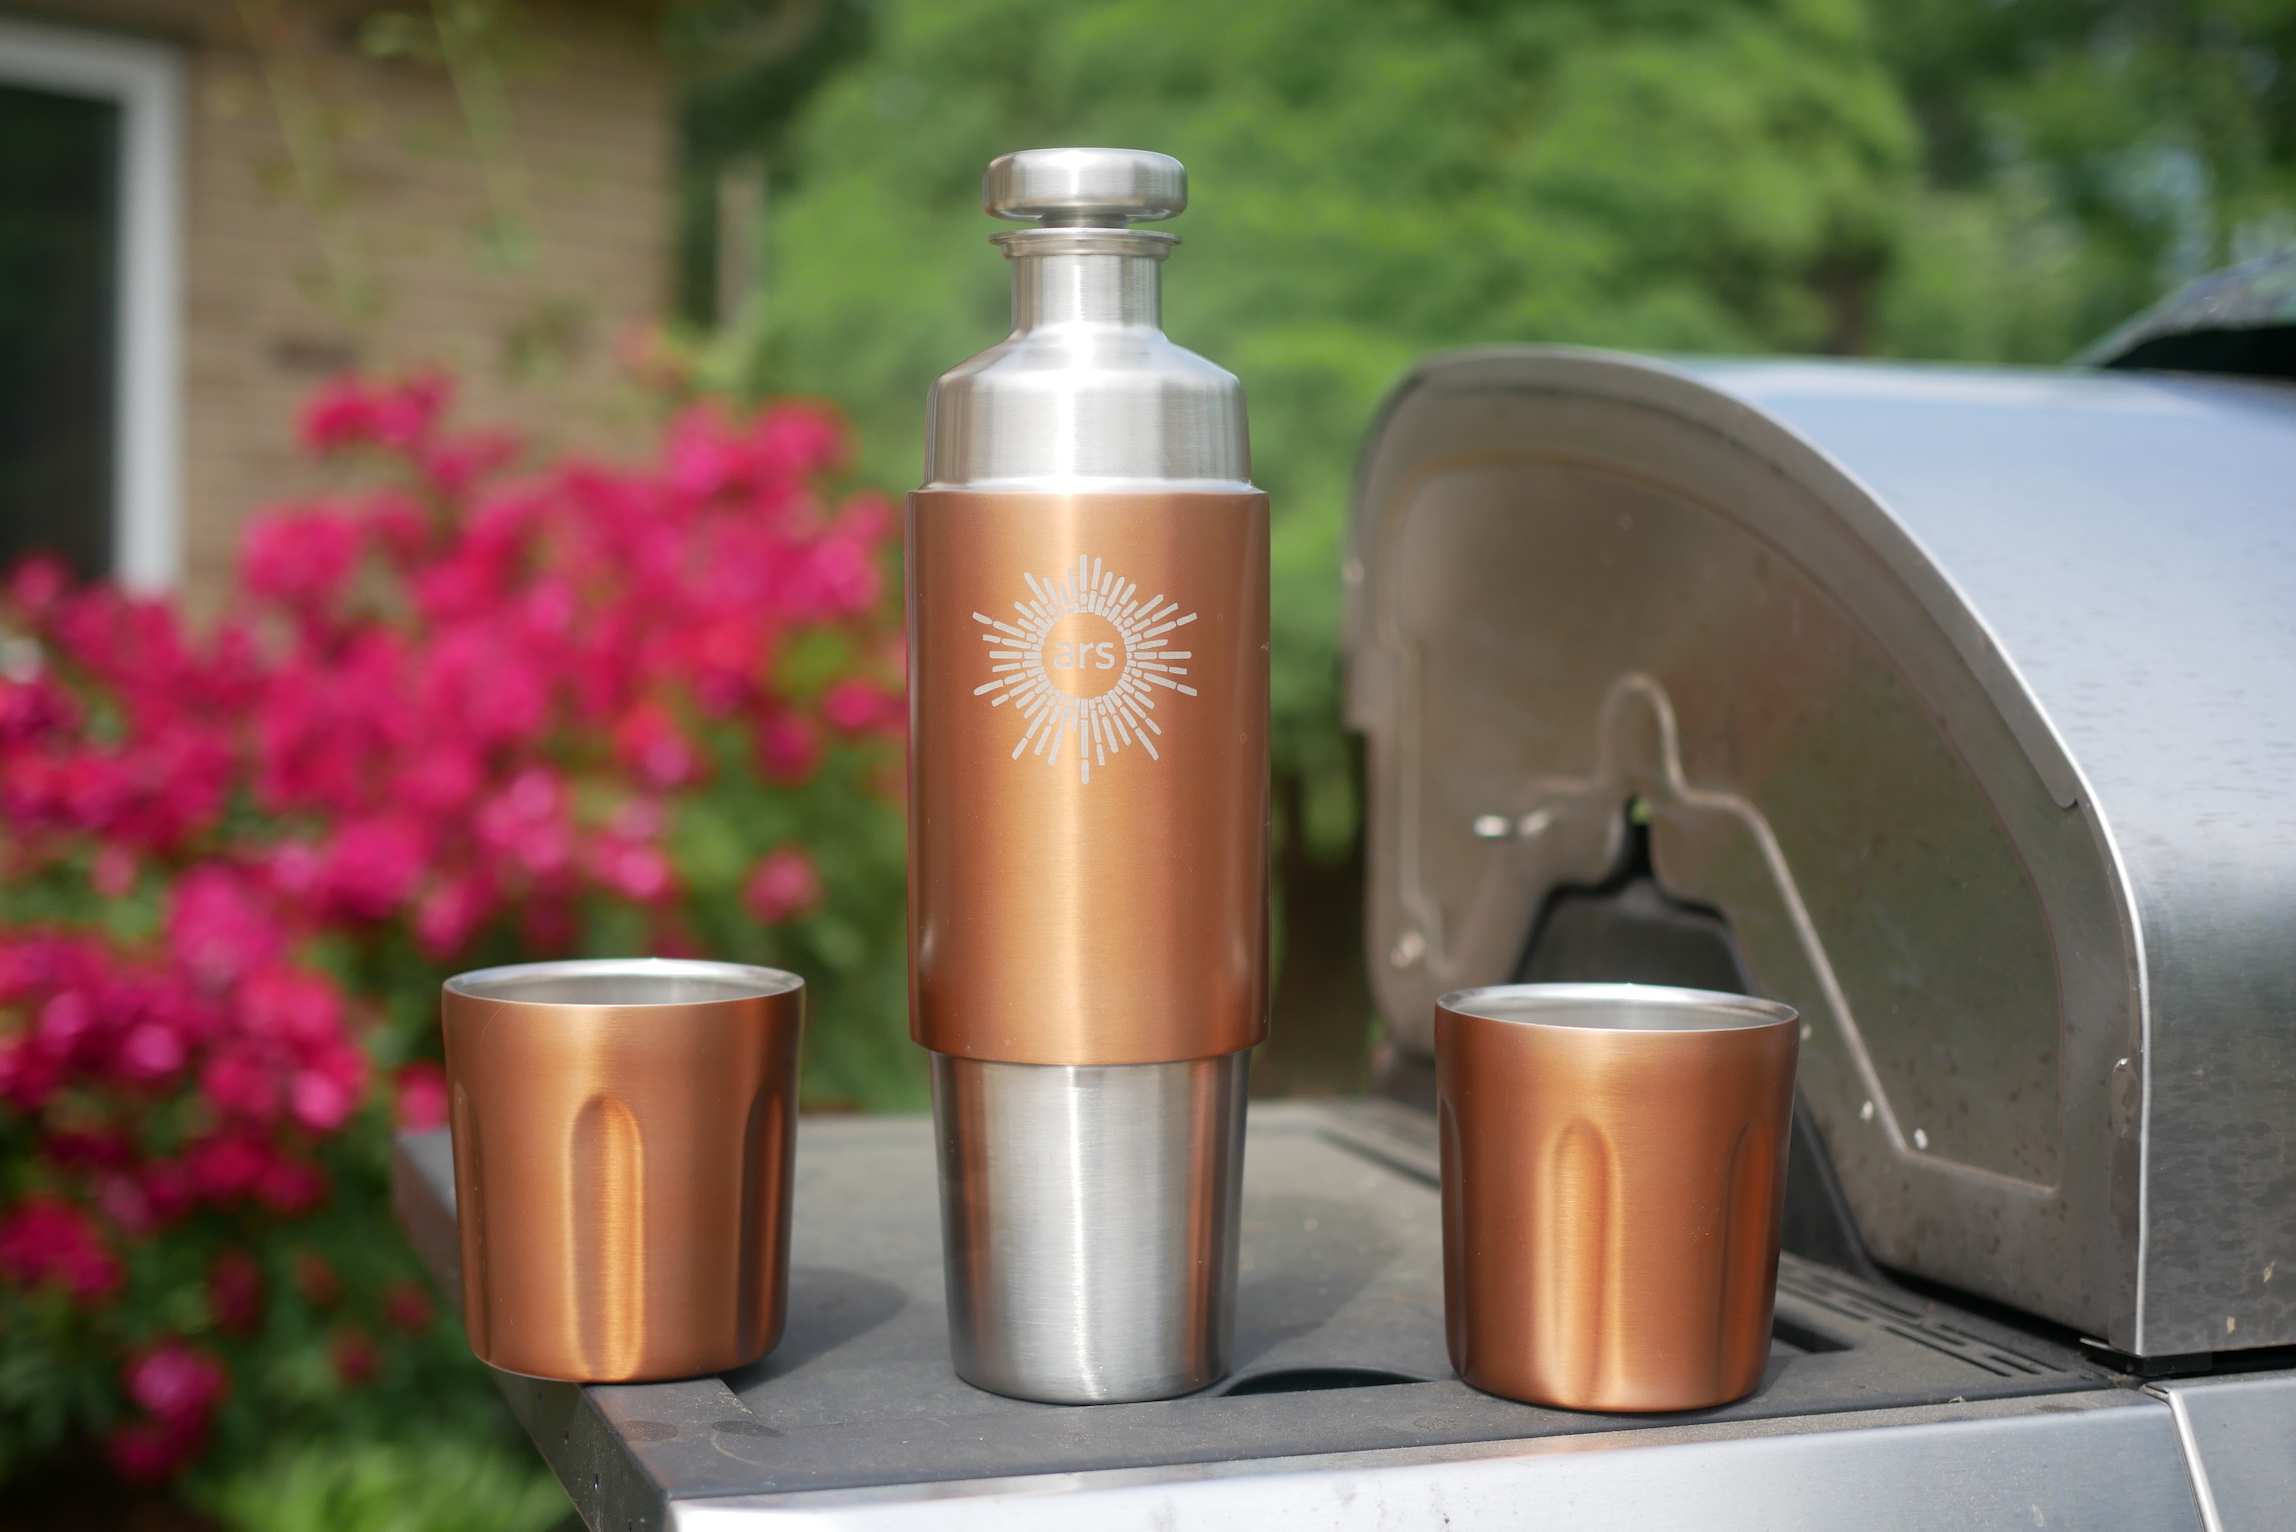 High Camp's Flasks look sharp, yet rugged, while keeping you hydrating or libating.